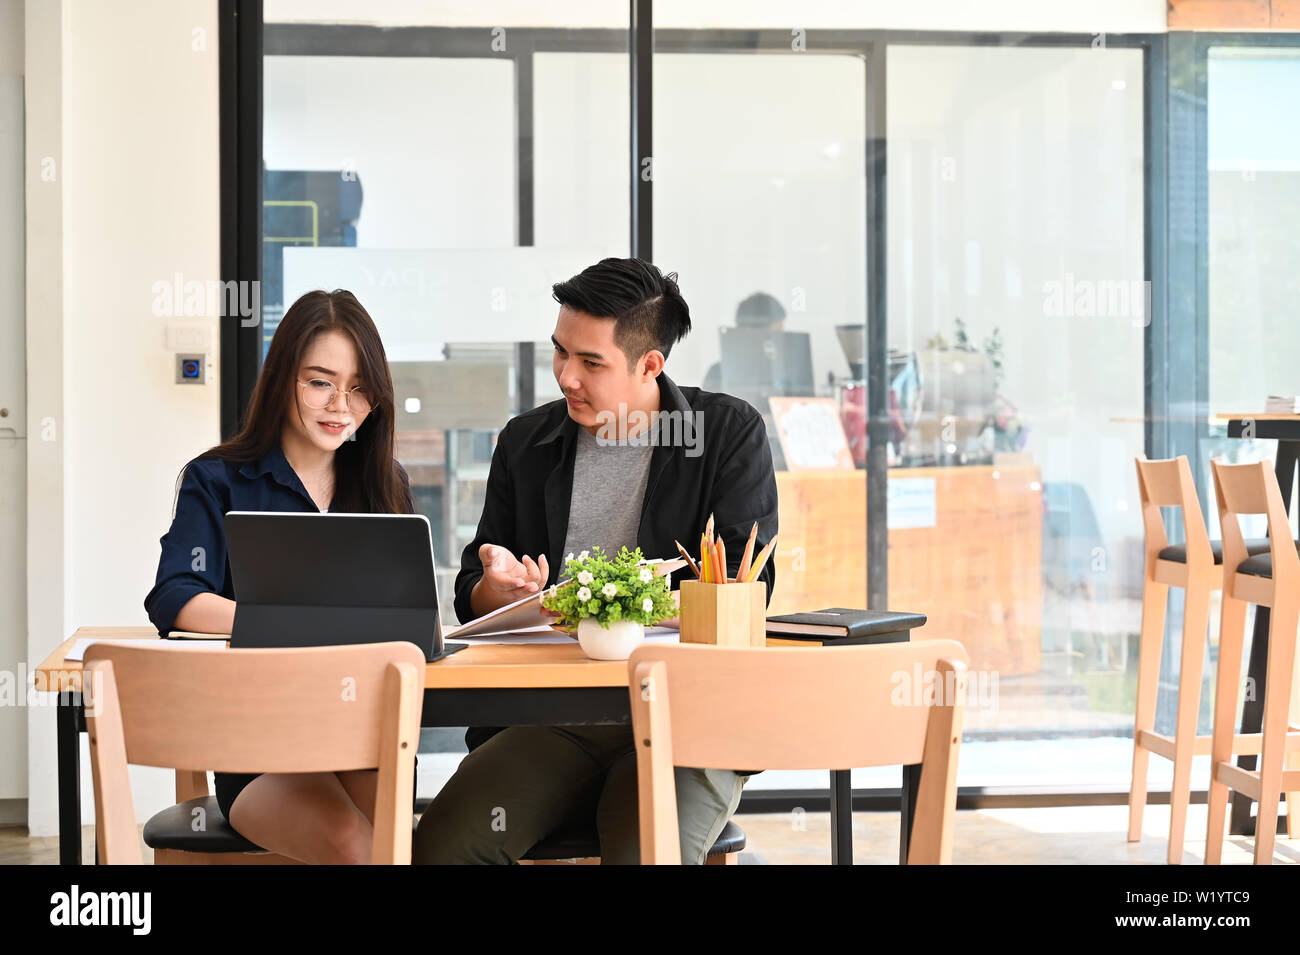 Two asian people working on co working cafe with talking startup business. - Stock Image